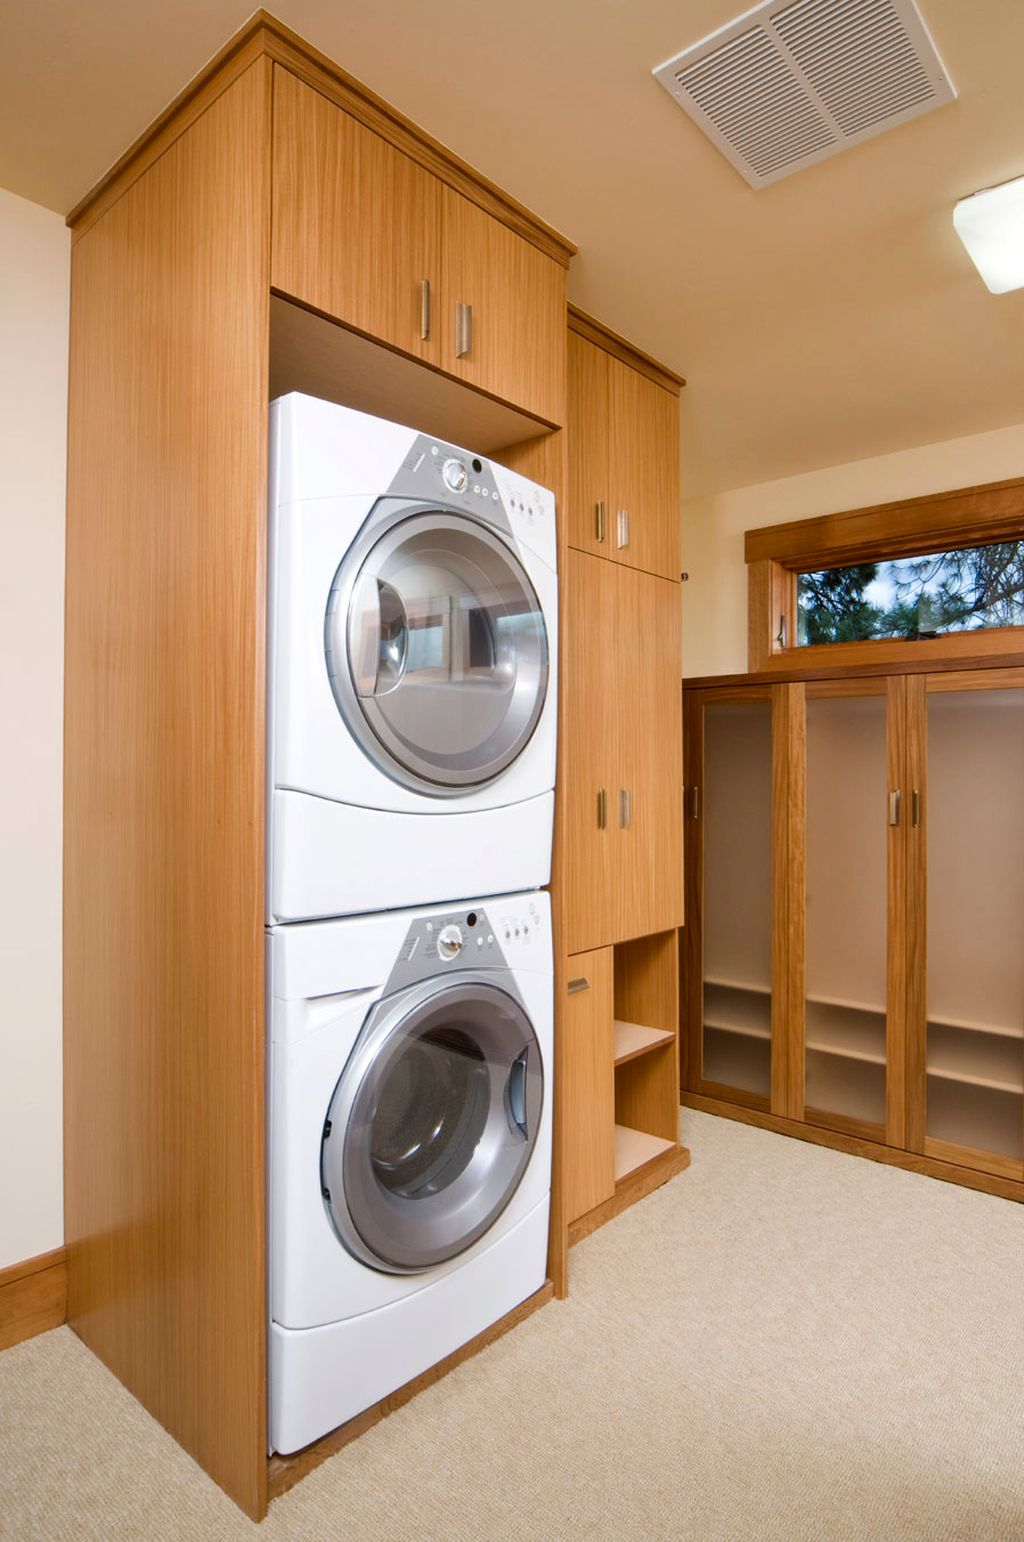 20 Beautiful Designs for Small Laundry Rooms on Small Laundry Room Cabinets  id=57911